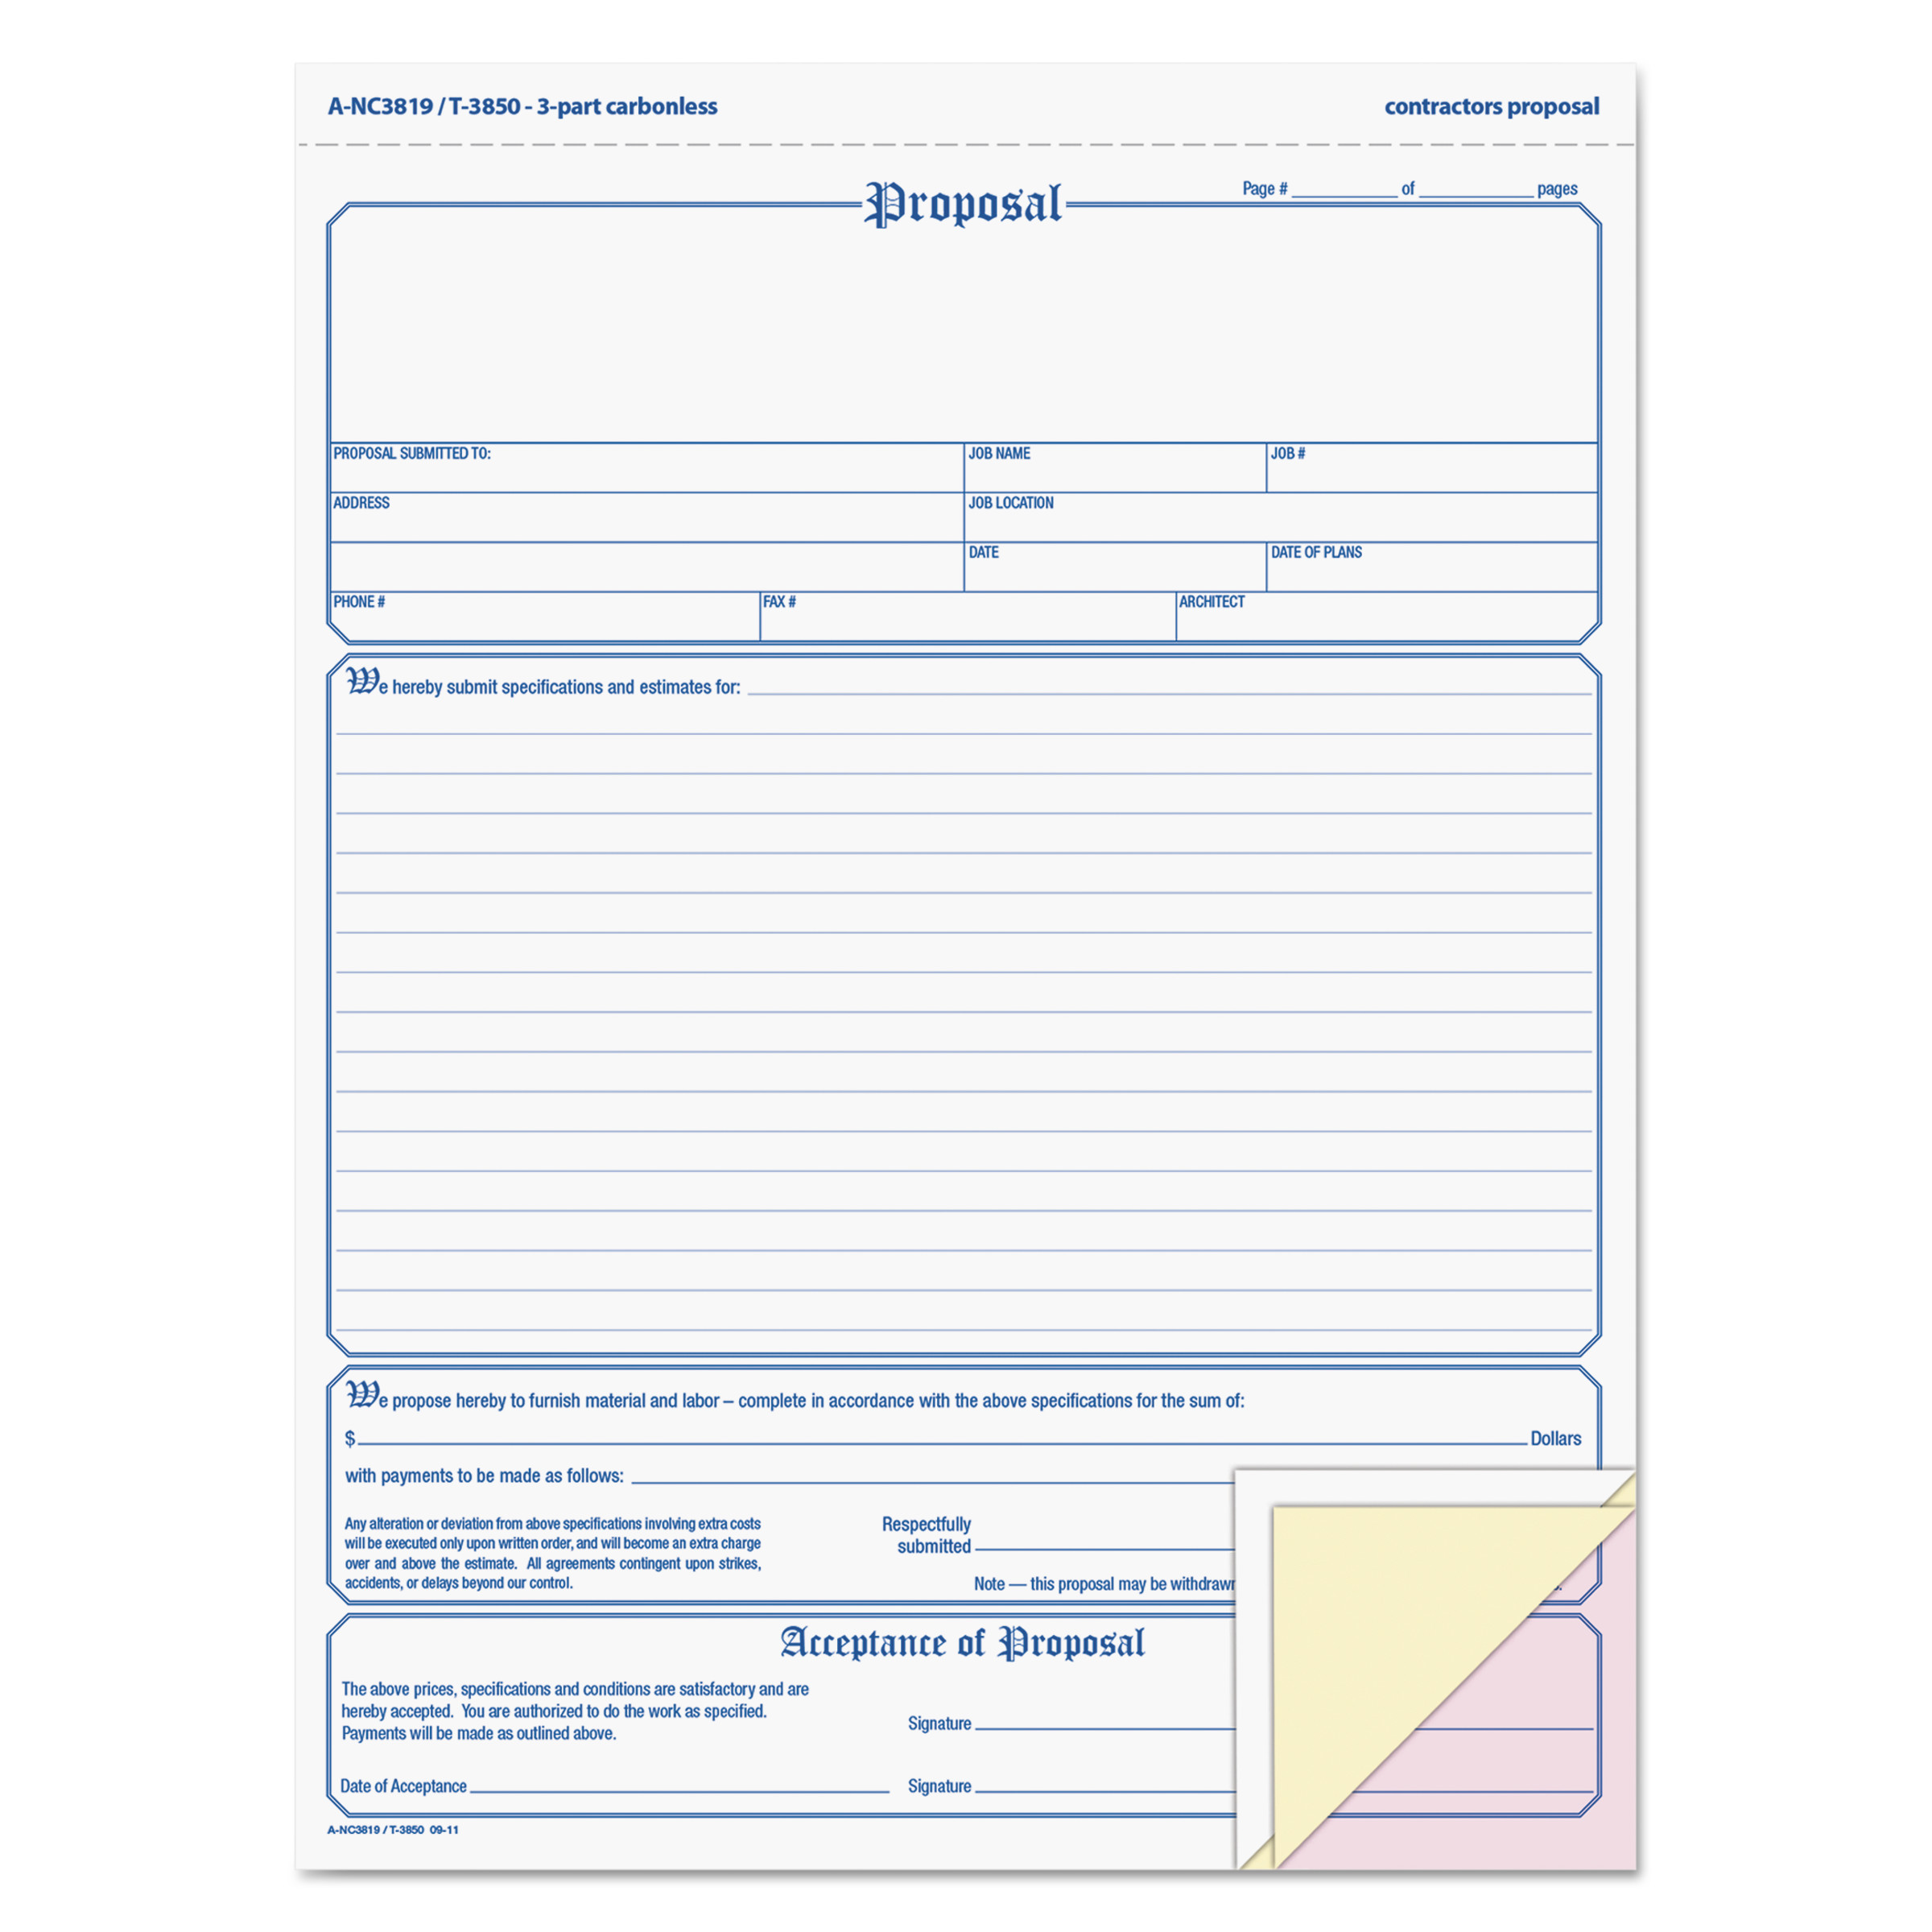 Adams Contractor Proposal Form Part Carbonless   X